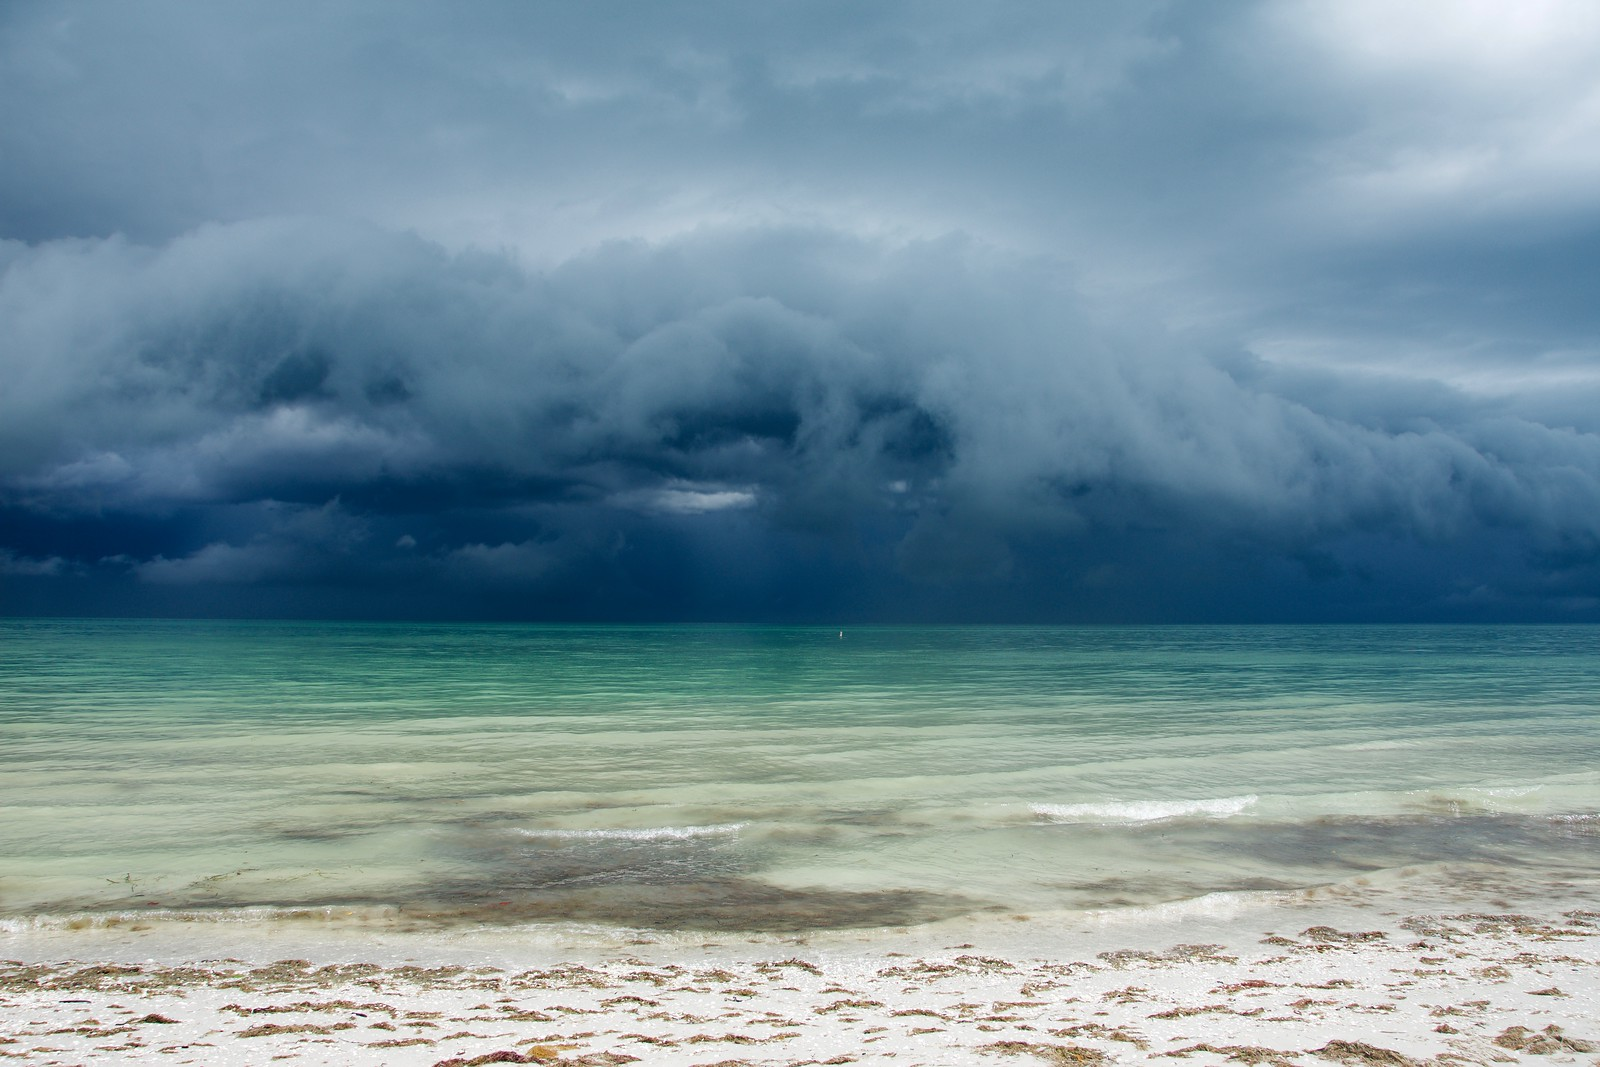 Storms can be beautiful but dangerous - be an alert and prepared paddler!